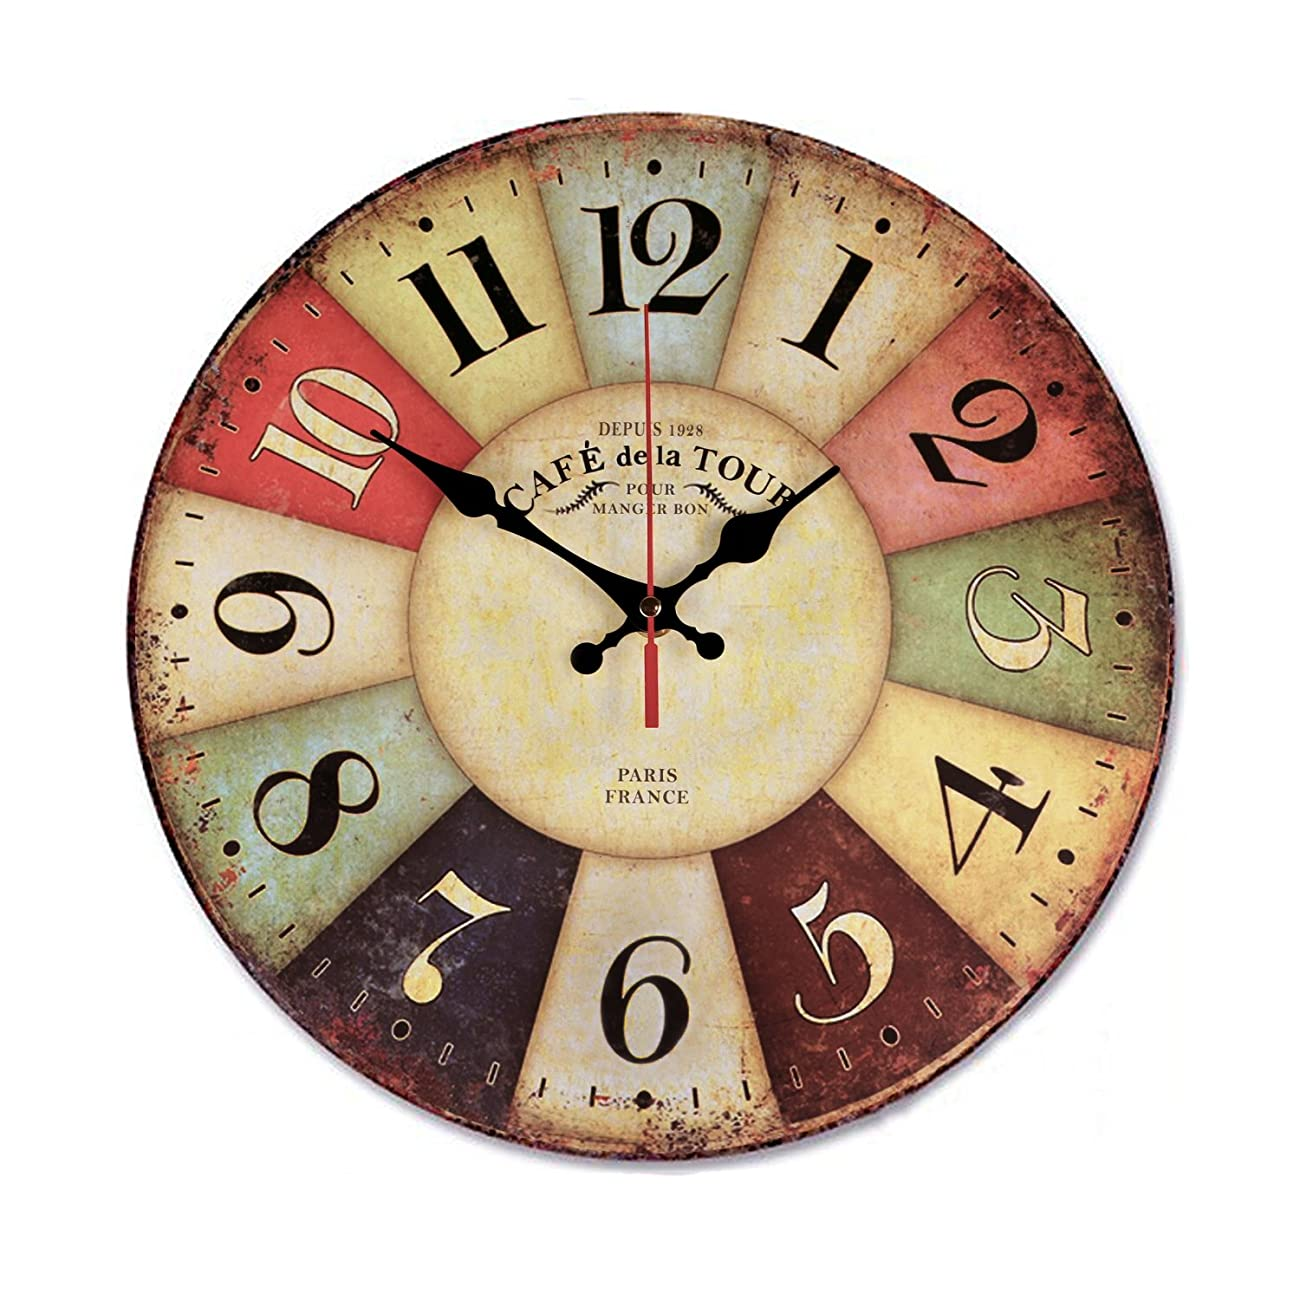 Wood Wall Clock, NALAKUVARA Vintage Colorful France Paris French Country Tuscan Retro Style Arabic Numerals Design Non -Ticking Silent Quiet Wooden Clock Gift Home Decorative for Room, 12-Inches 0